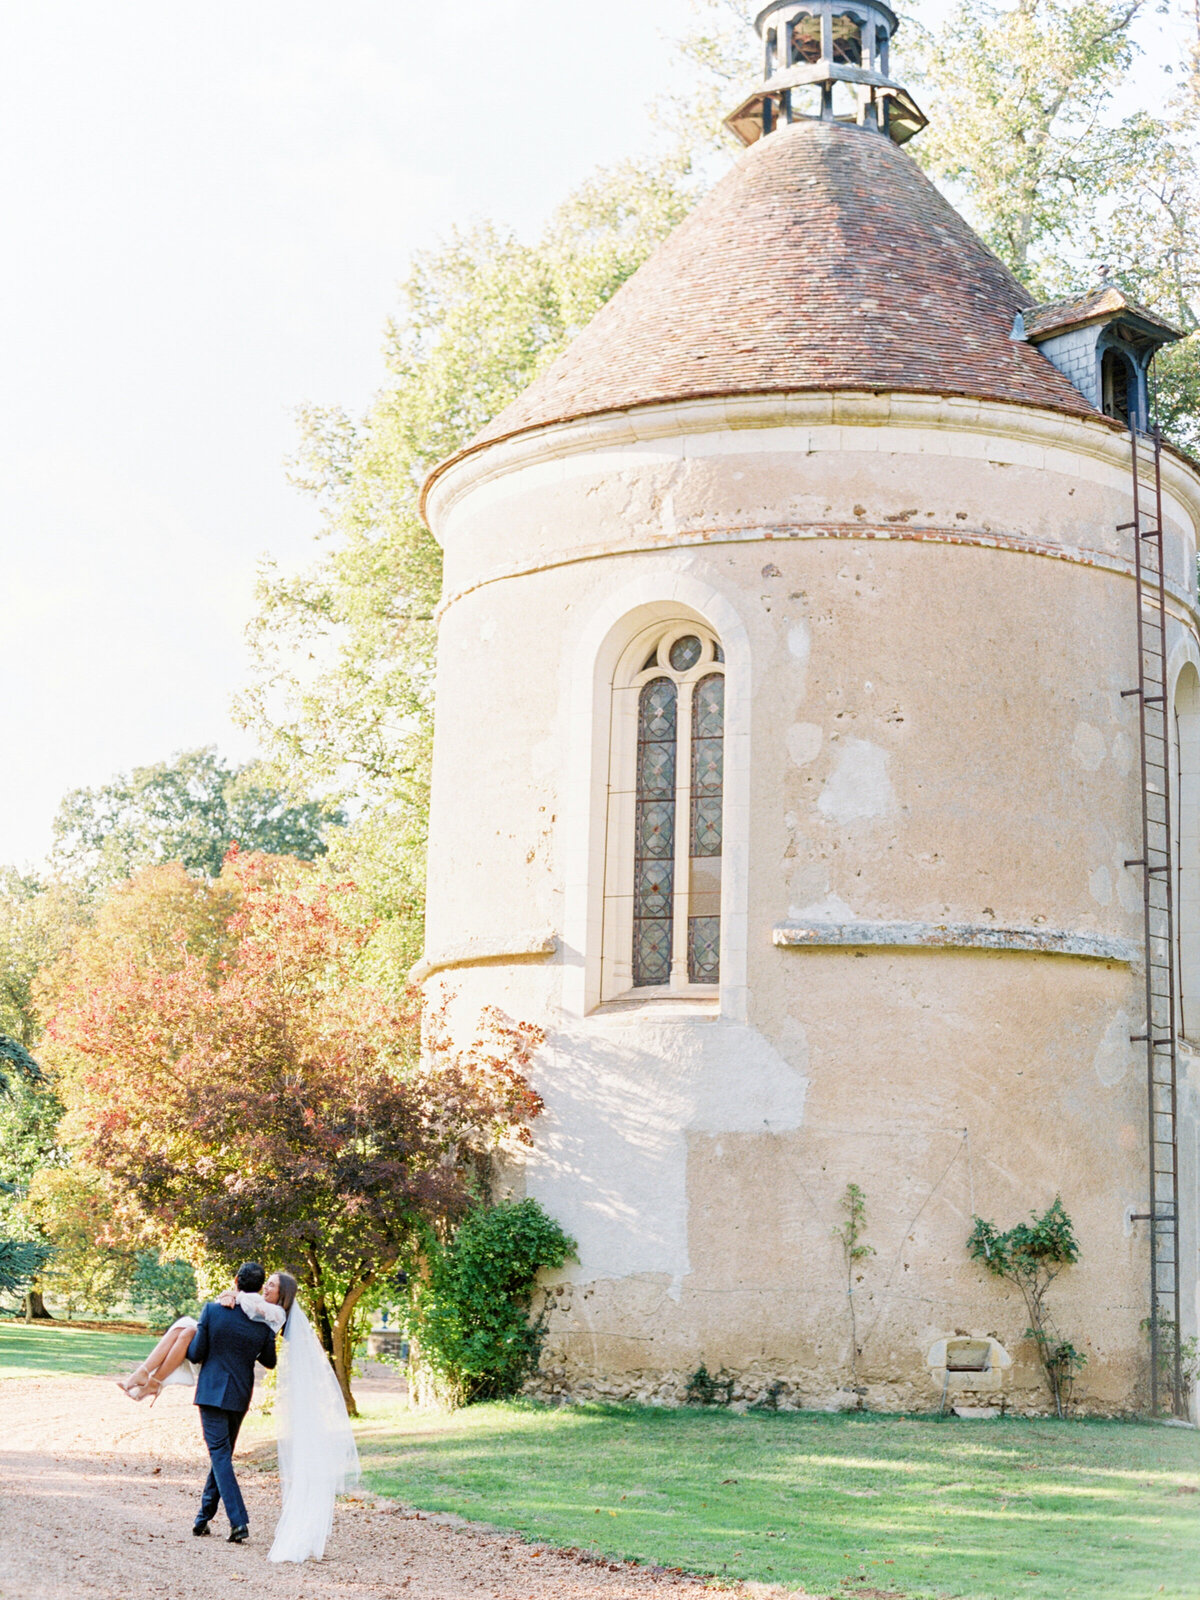 chateau-bouthonvilliers-wedding-paris-wedding-photographer-mackenzie-reiter-photography-60